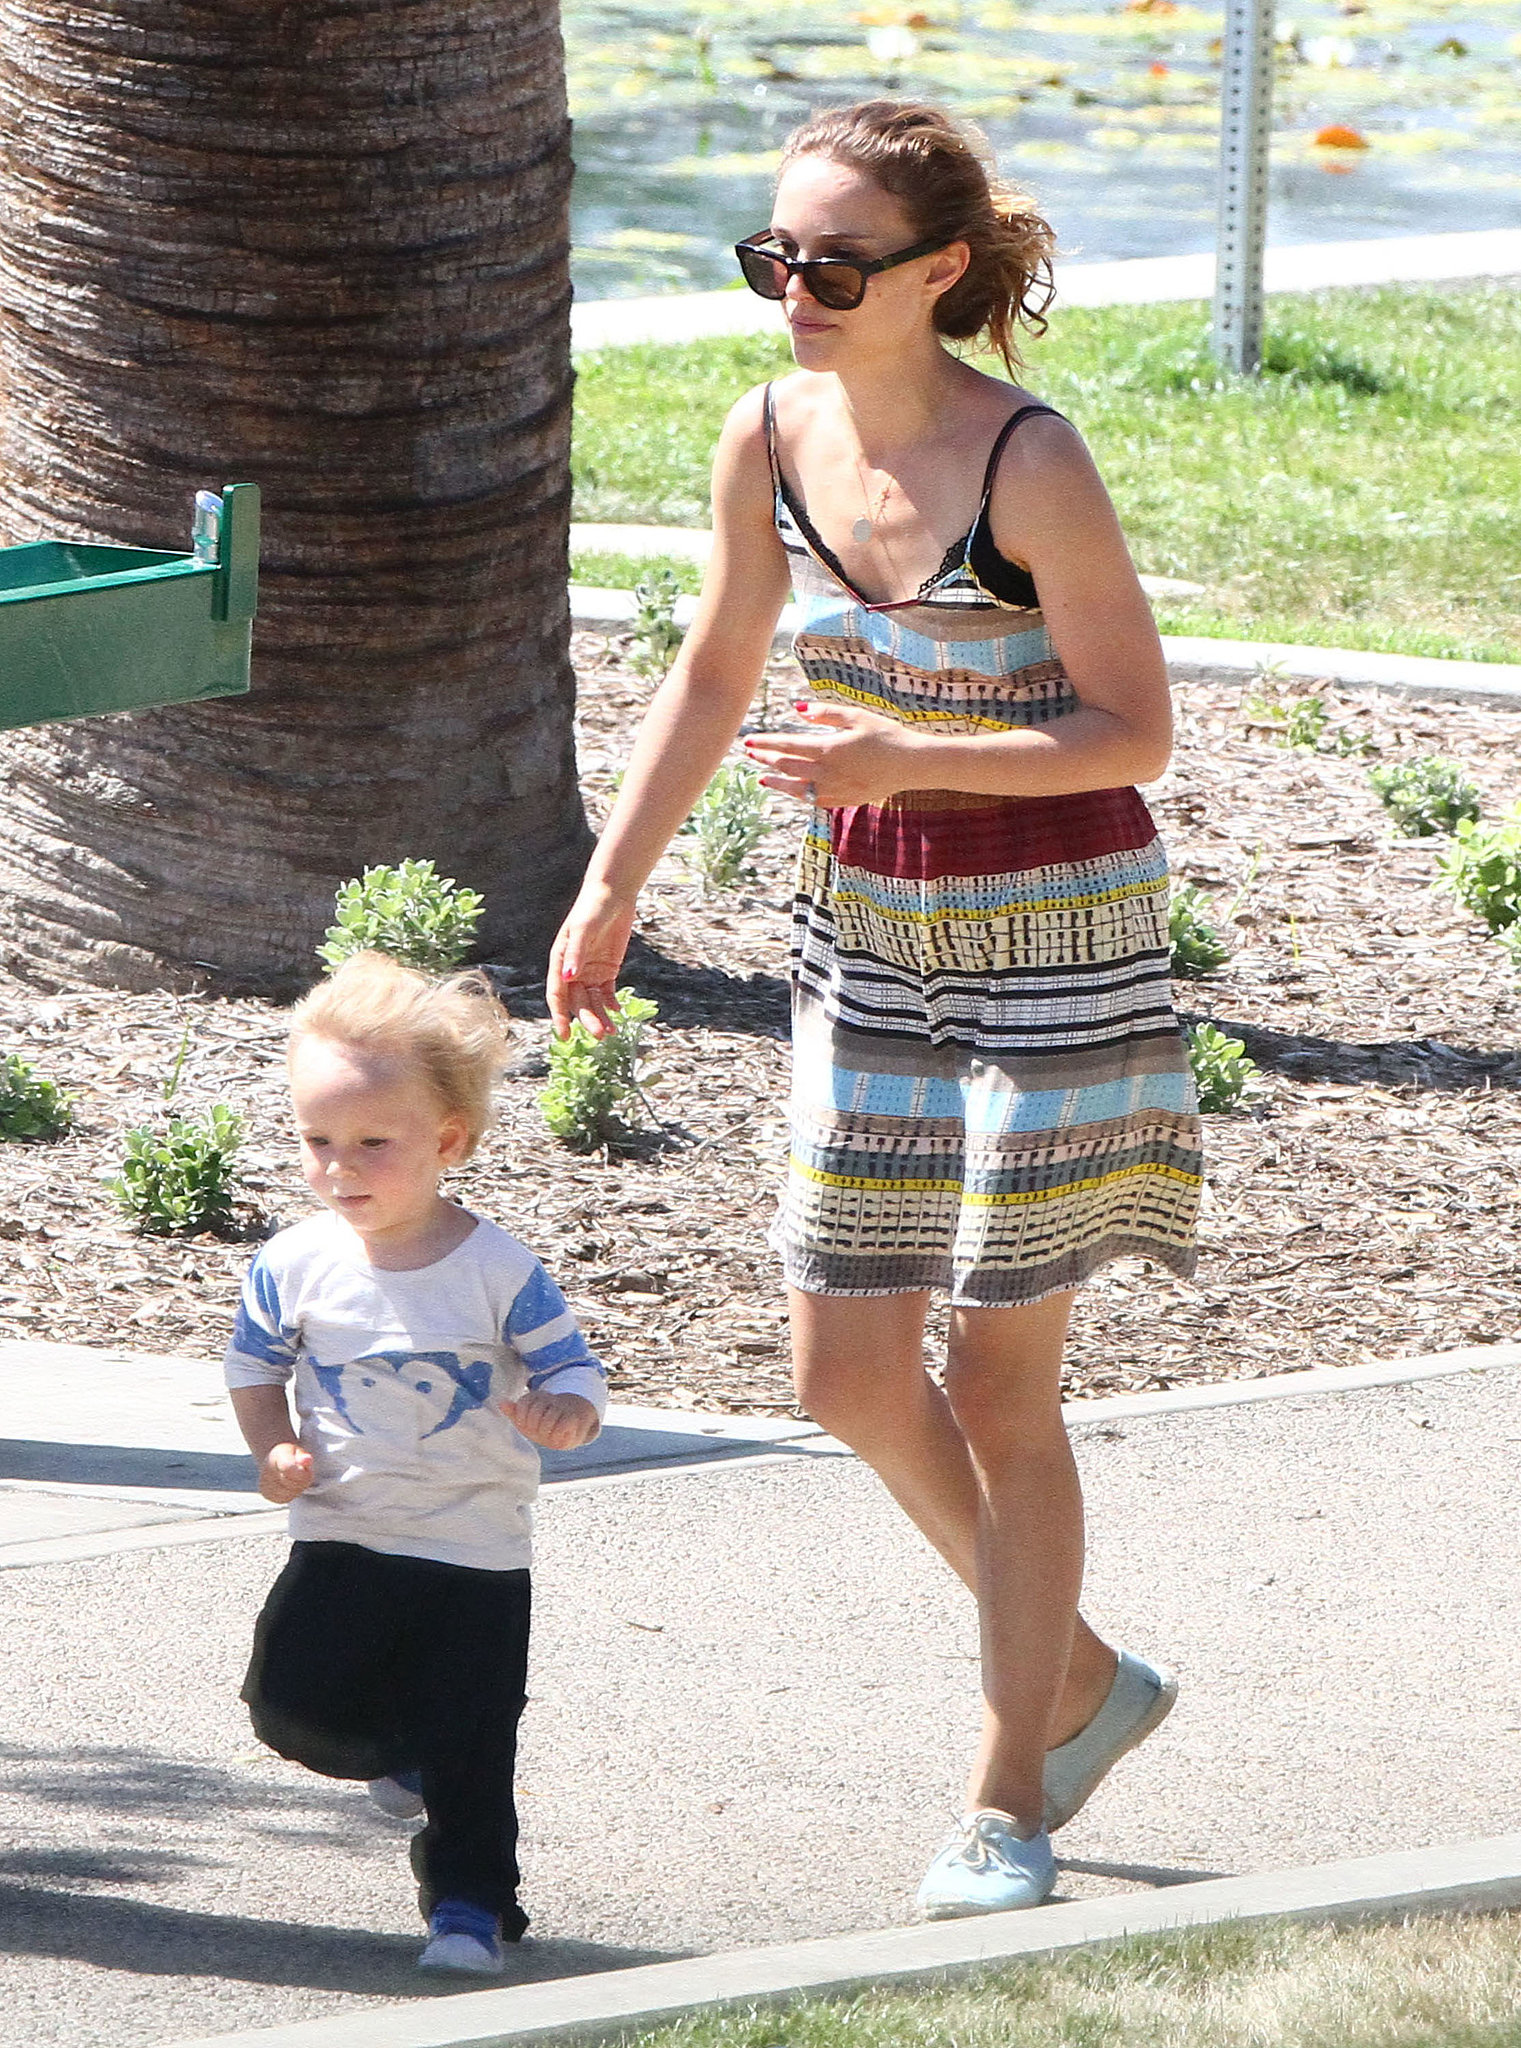 Natalie Portman chased Aleph around the park.